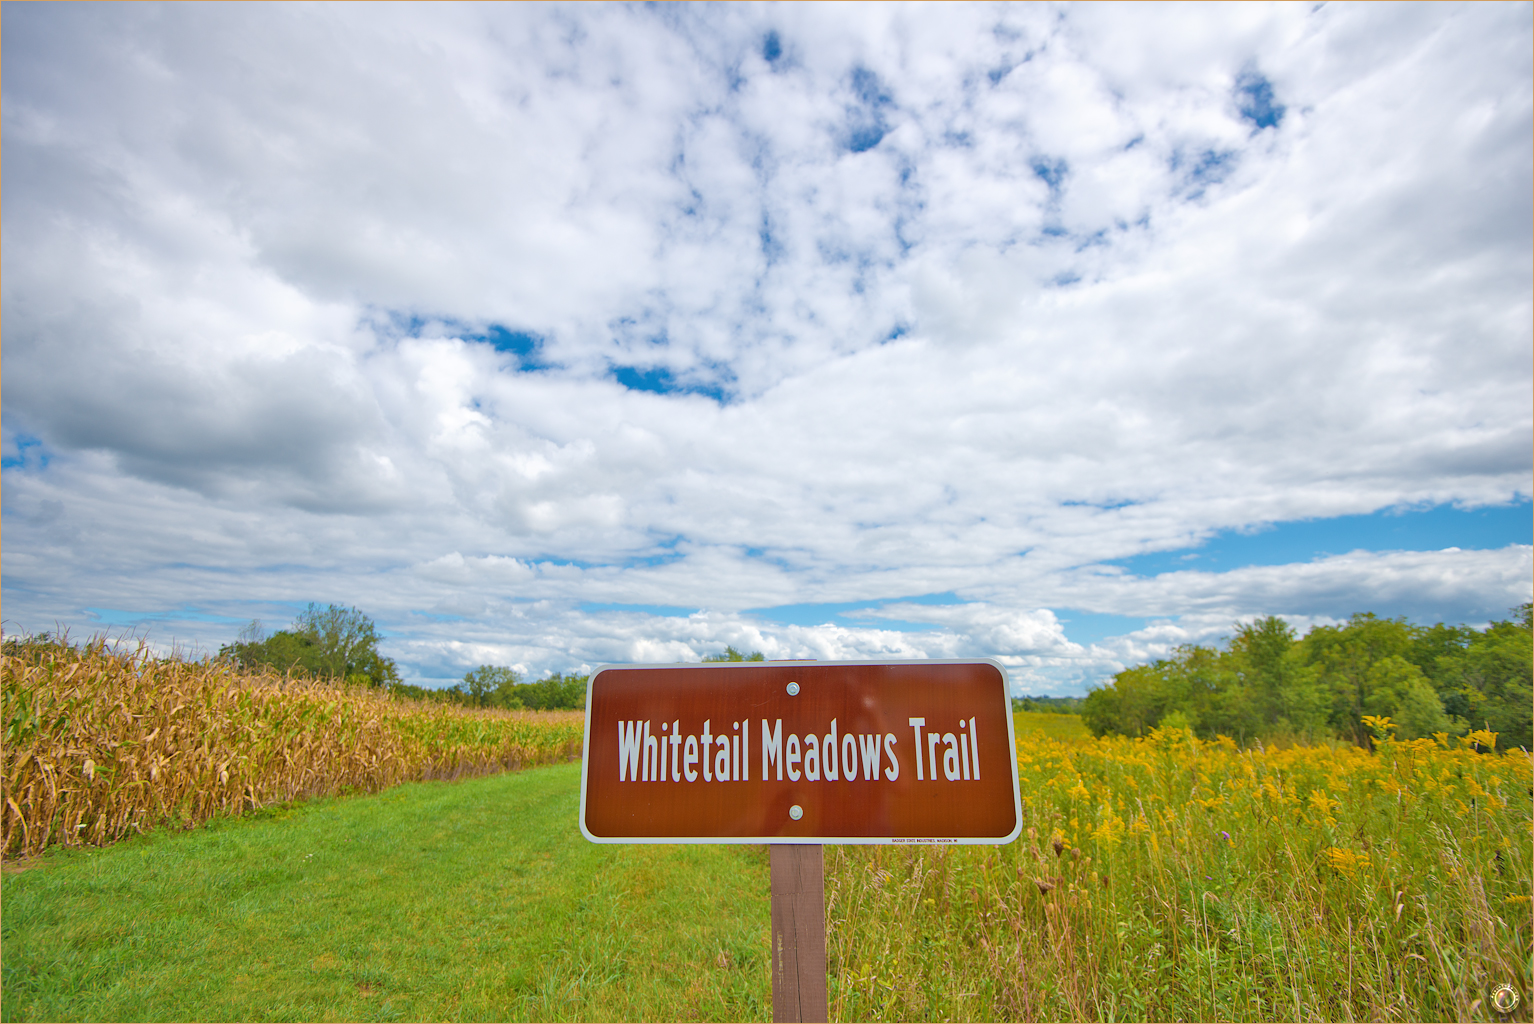 155 Wyalusing State Park Whitetail Meadows Trail